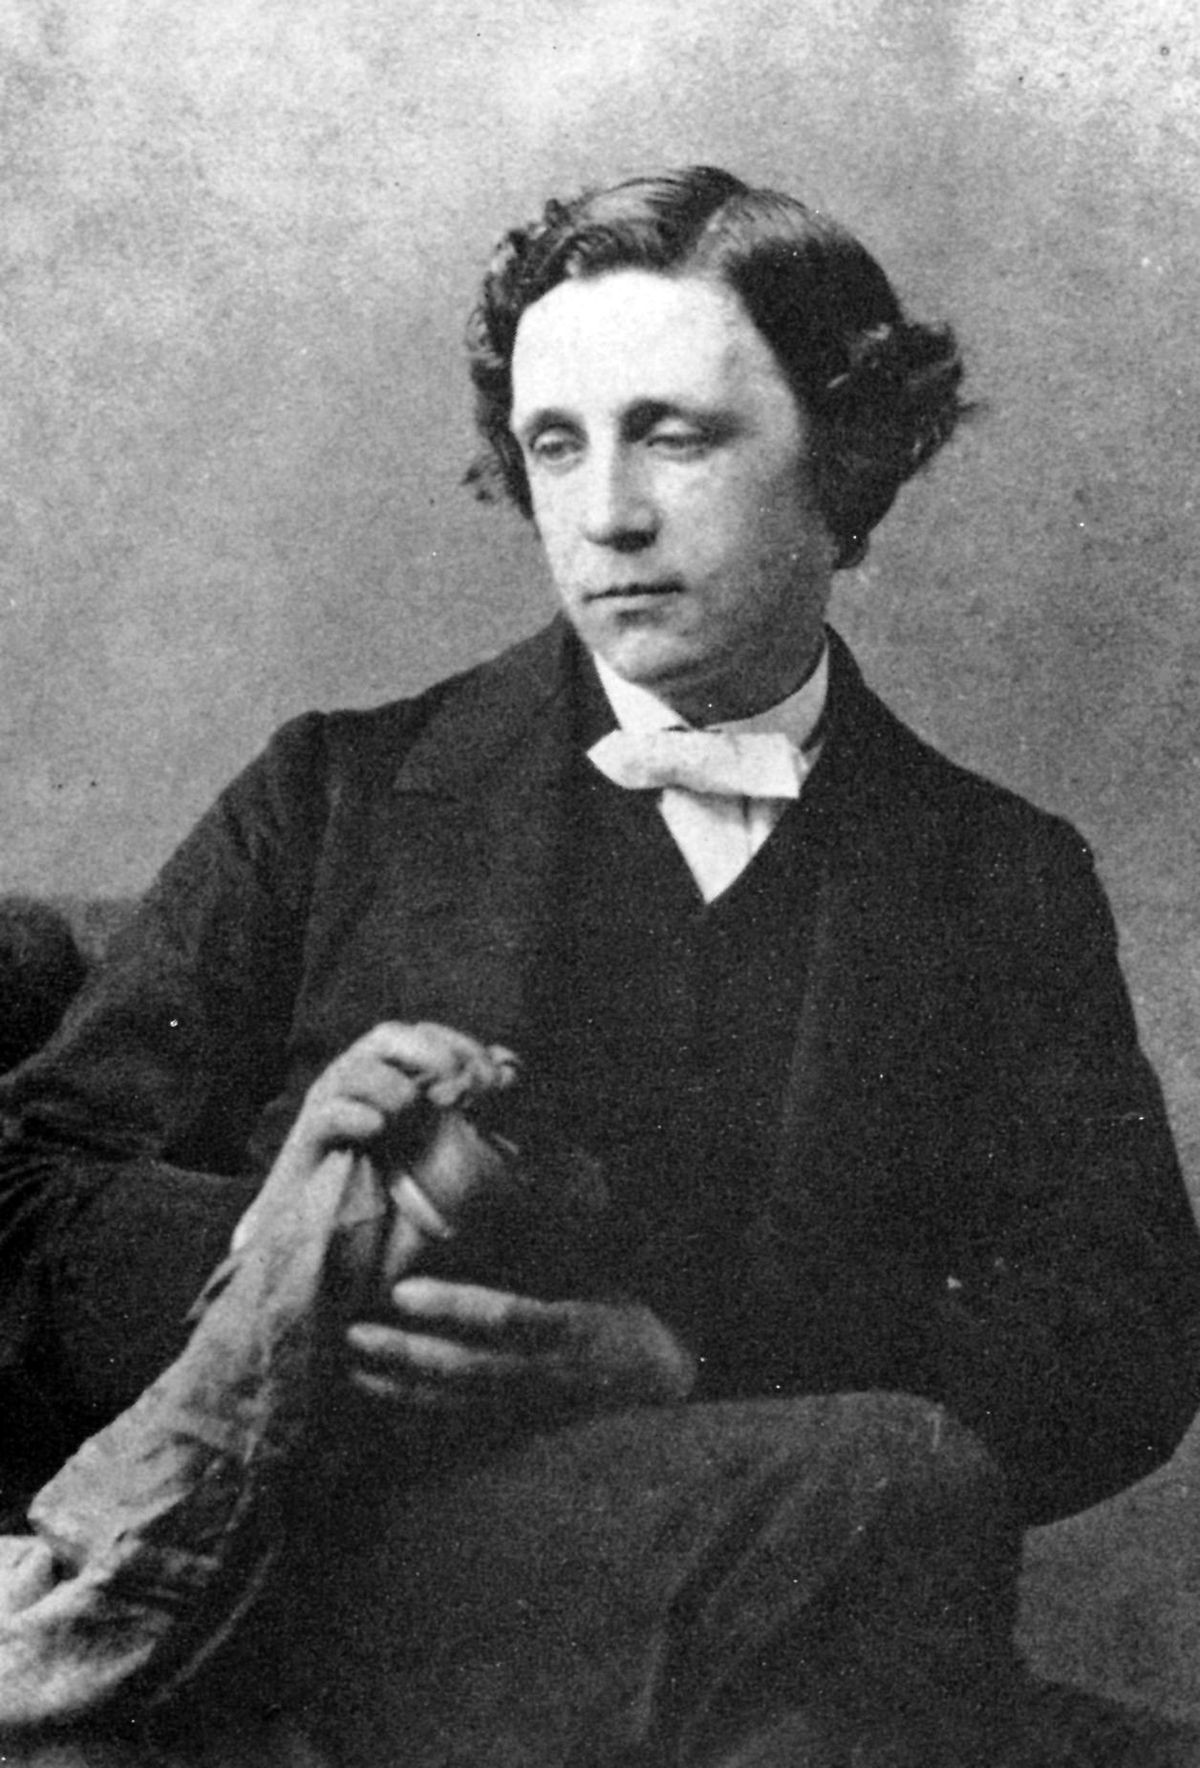 A life through the looking glass - 120. Todestag von Lewis Carroll